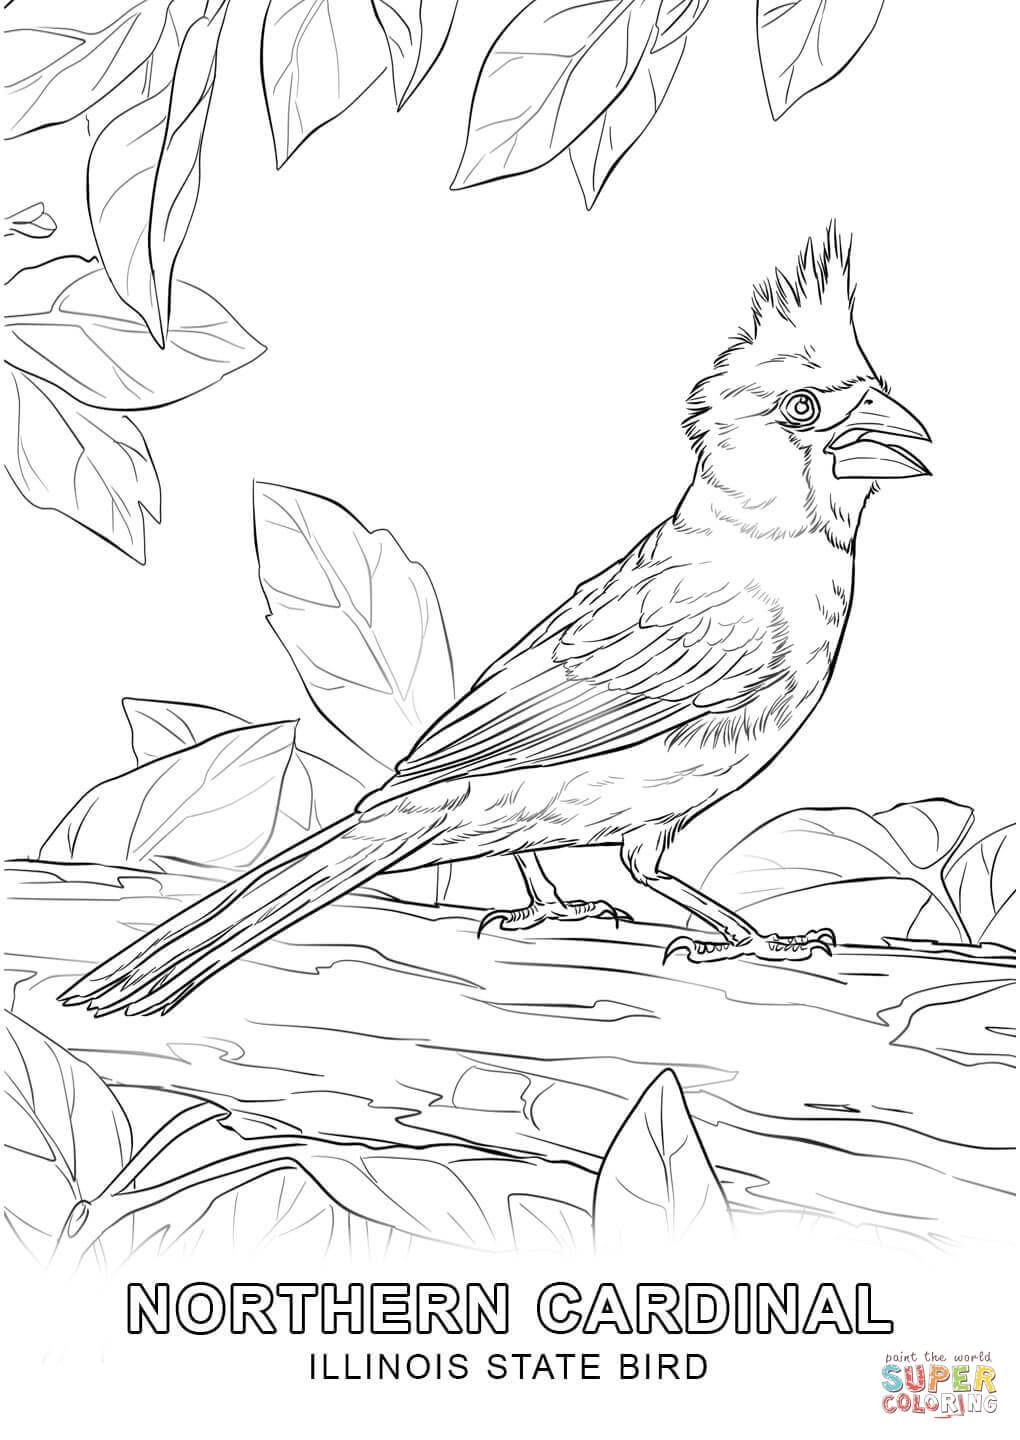 Illinois State Bird Coloring Page Jpg 1020 1440